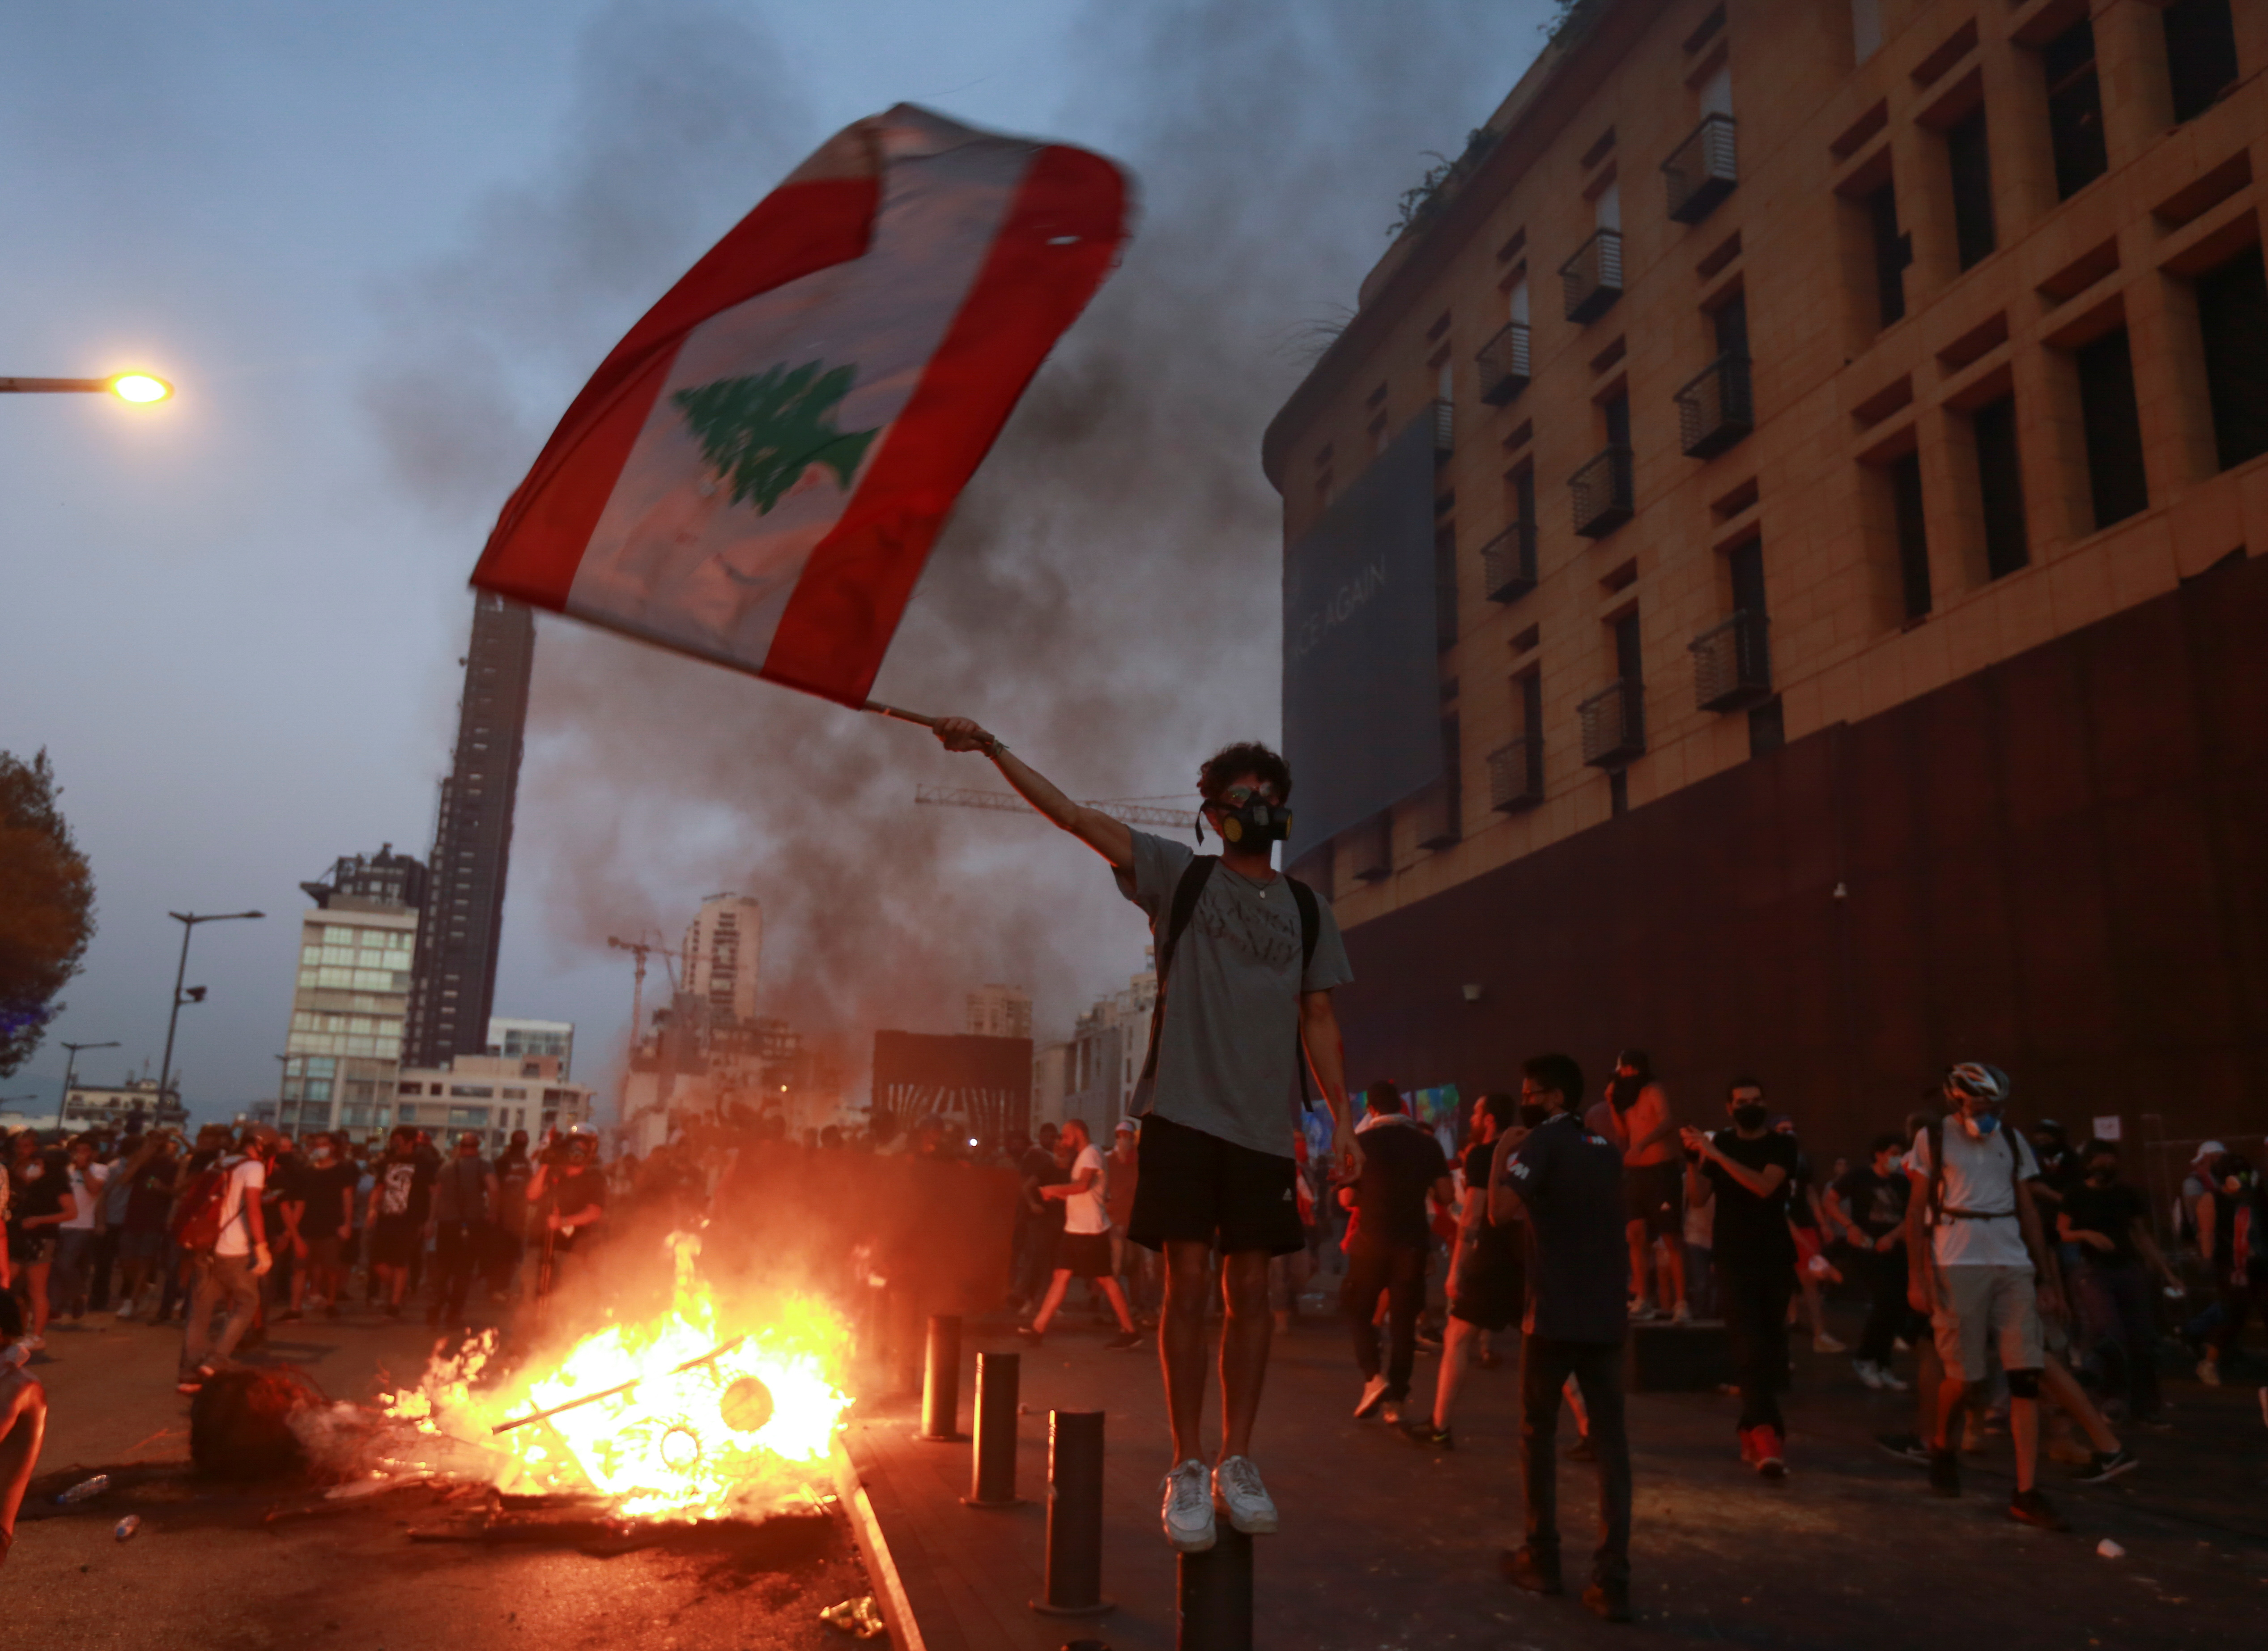 A demonstrator holds the Lebanese flag during a protest near parliament, as Lebanon marks the one-year anniversary of the explosion in Beirut, Lebanon August 4, 2021. REUTERS/Aziz Taher